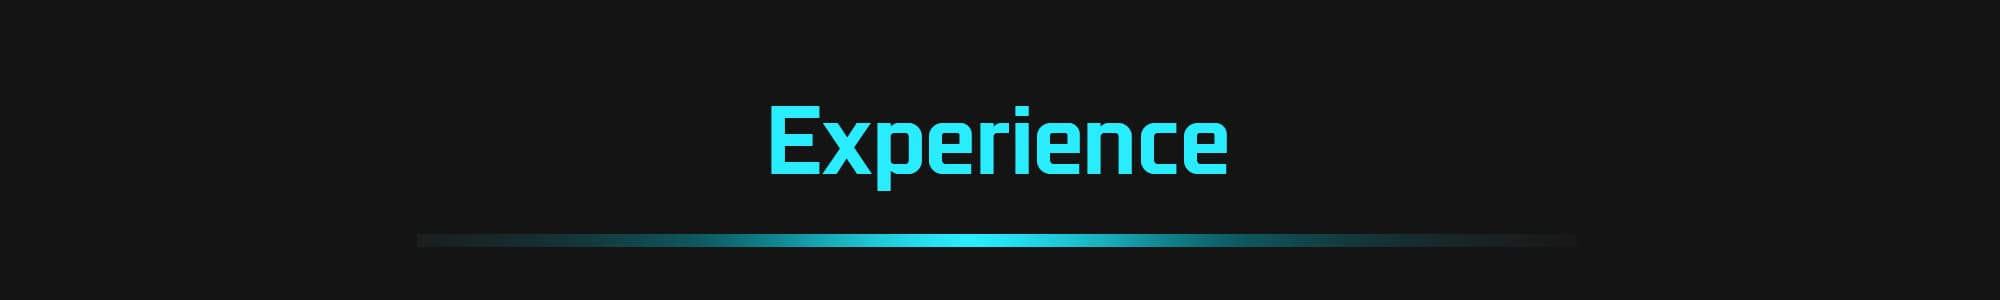 Experience-title